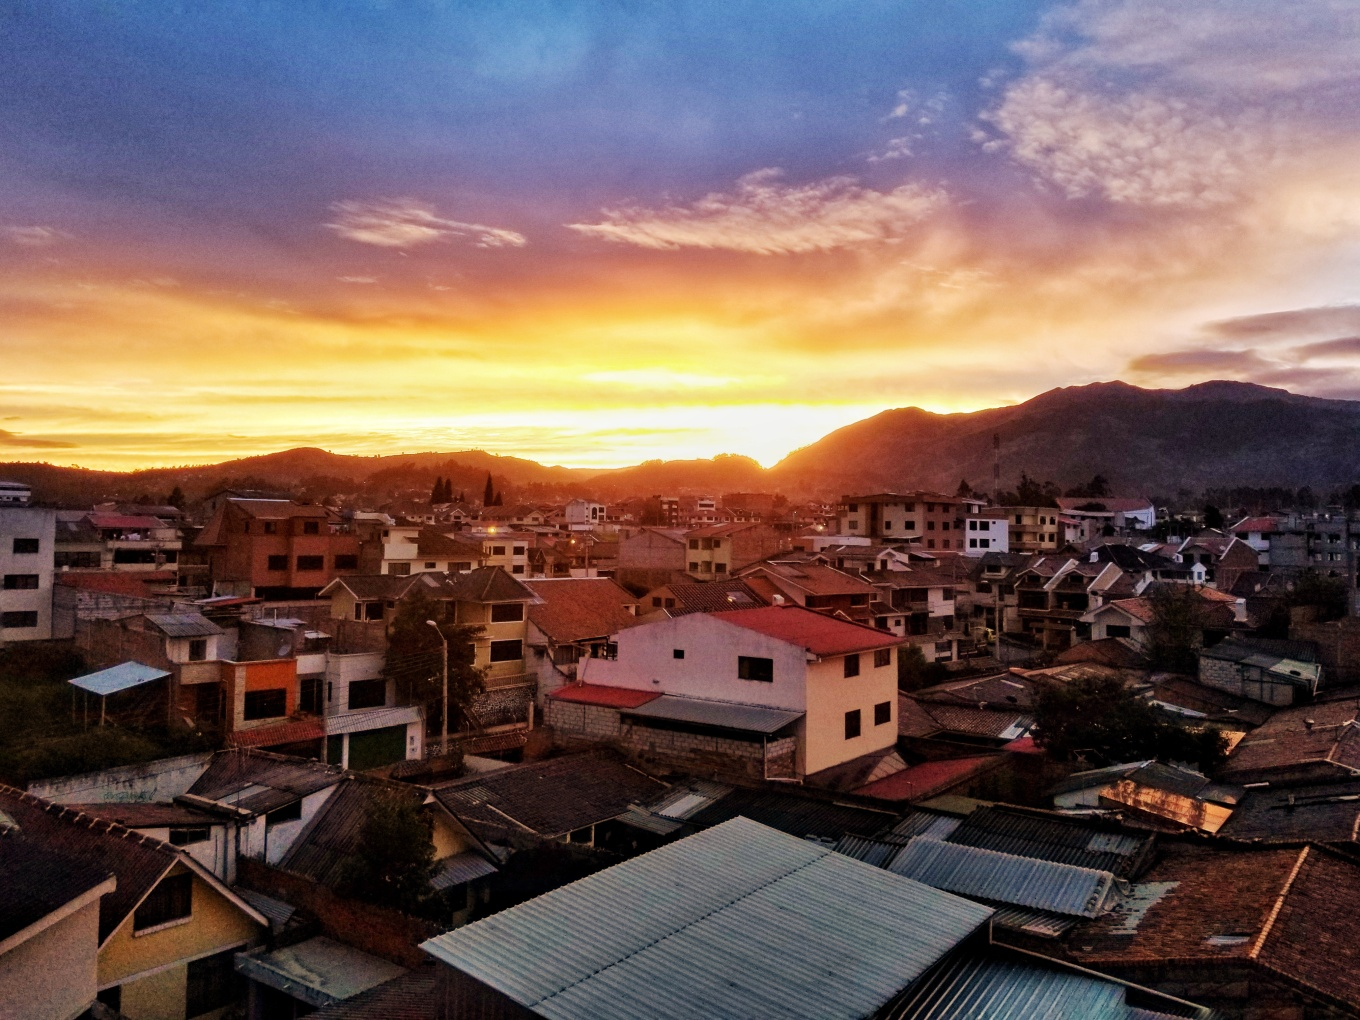 Sunset over the Andes in the city of Cuenca, Ecuador